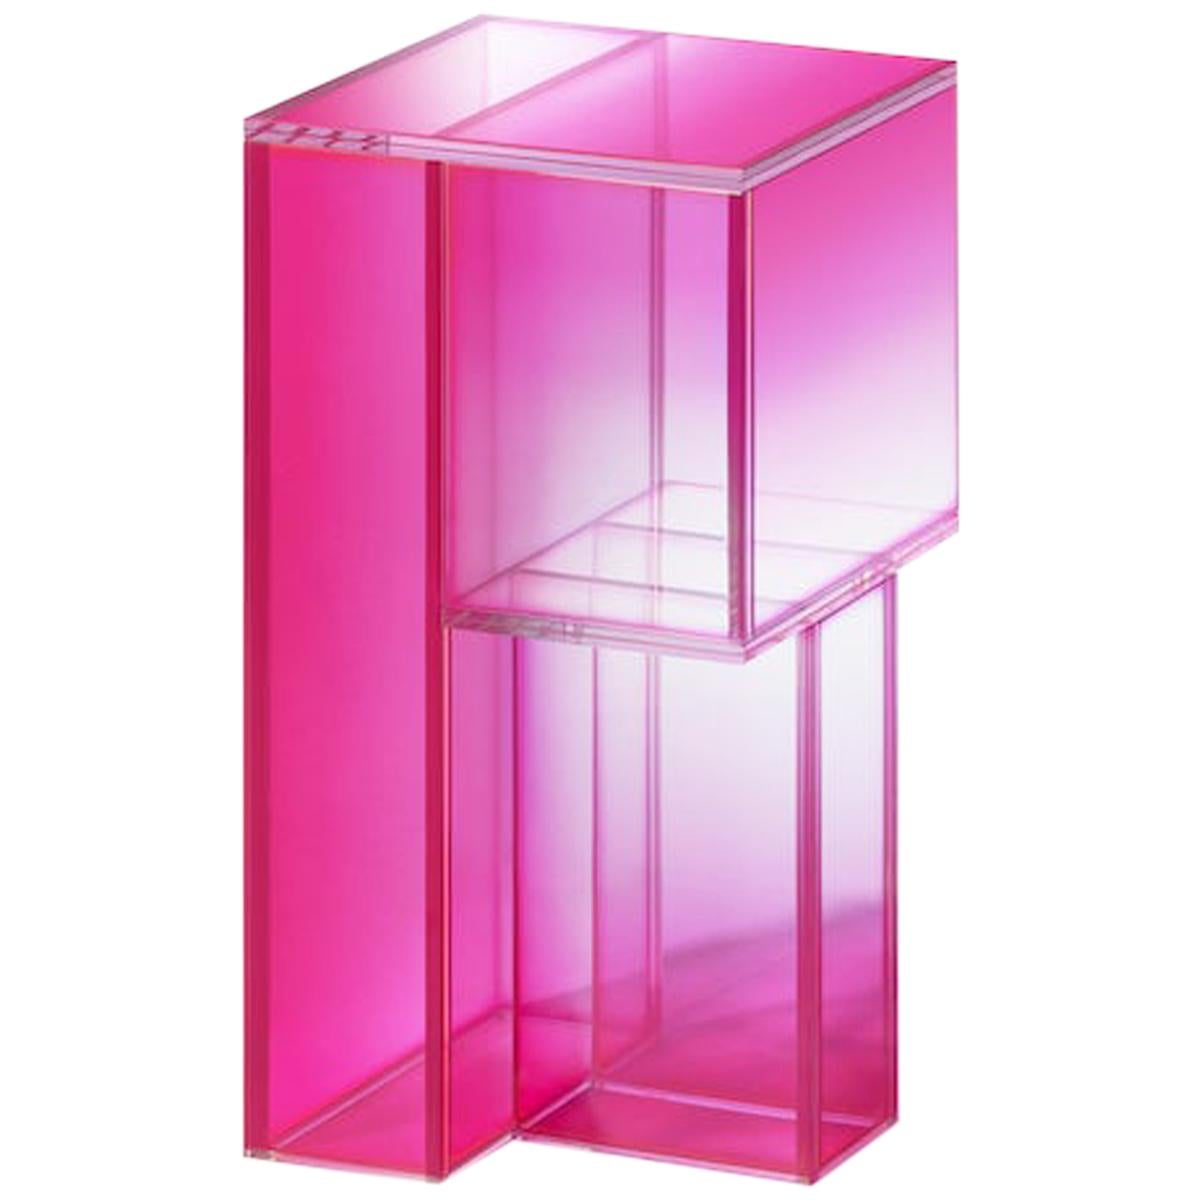 Studio Buzao, Null Side Shelf Hot Pink Edition, Laminated Glass, Limited Edition